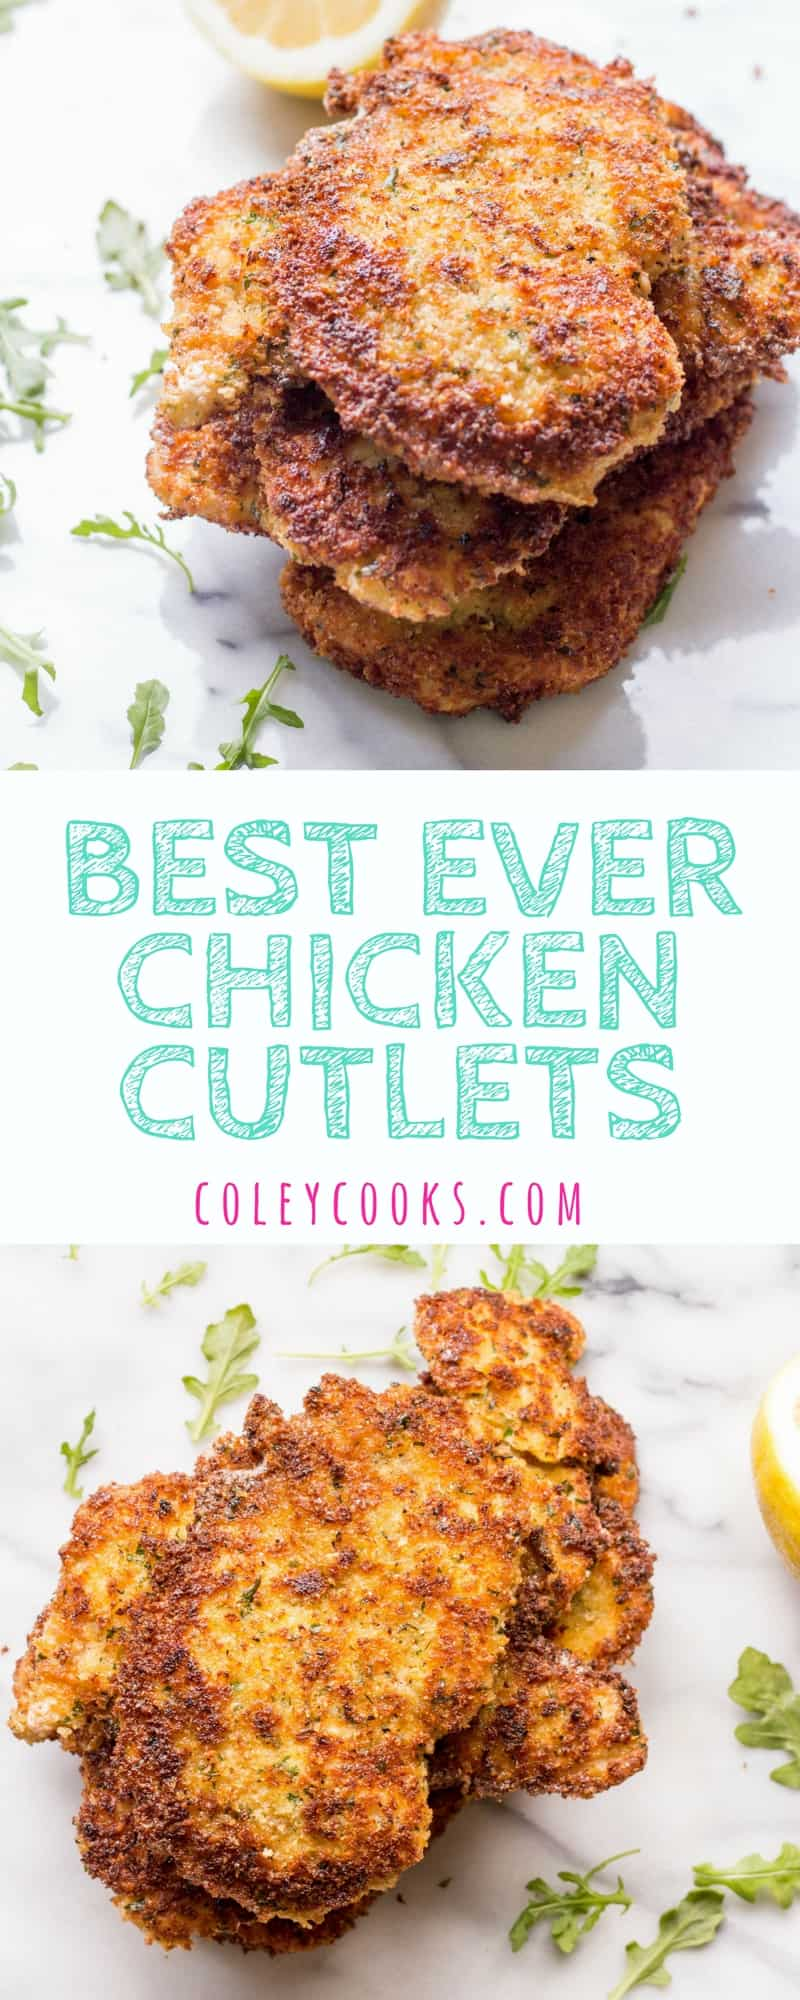 BEST EVER CHICKEN CUTLETS! | Secrets to the crispiest, thinnest, most tender, perfectly cooked chicken cutlets EVER! Perfect for Chicken Milanese, Chicken Parm, or for kids! | ColeyCooks.com